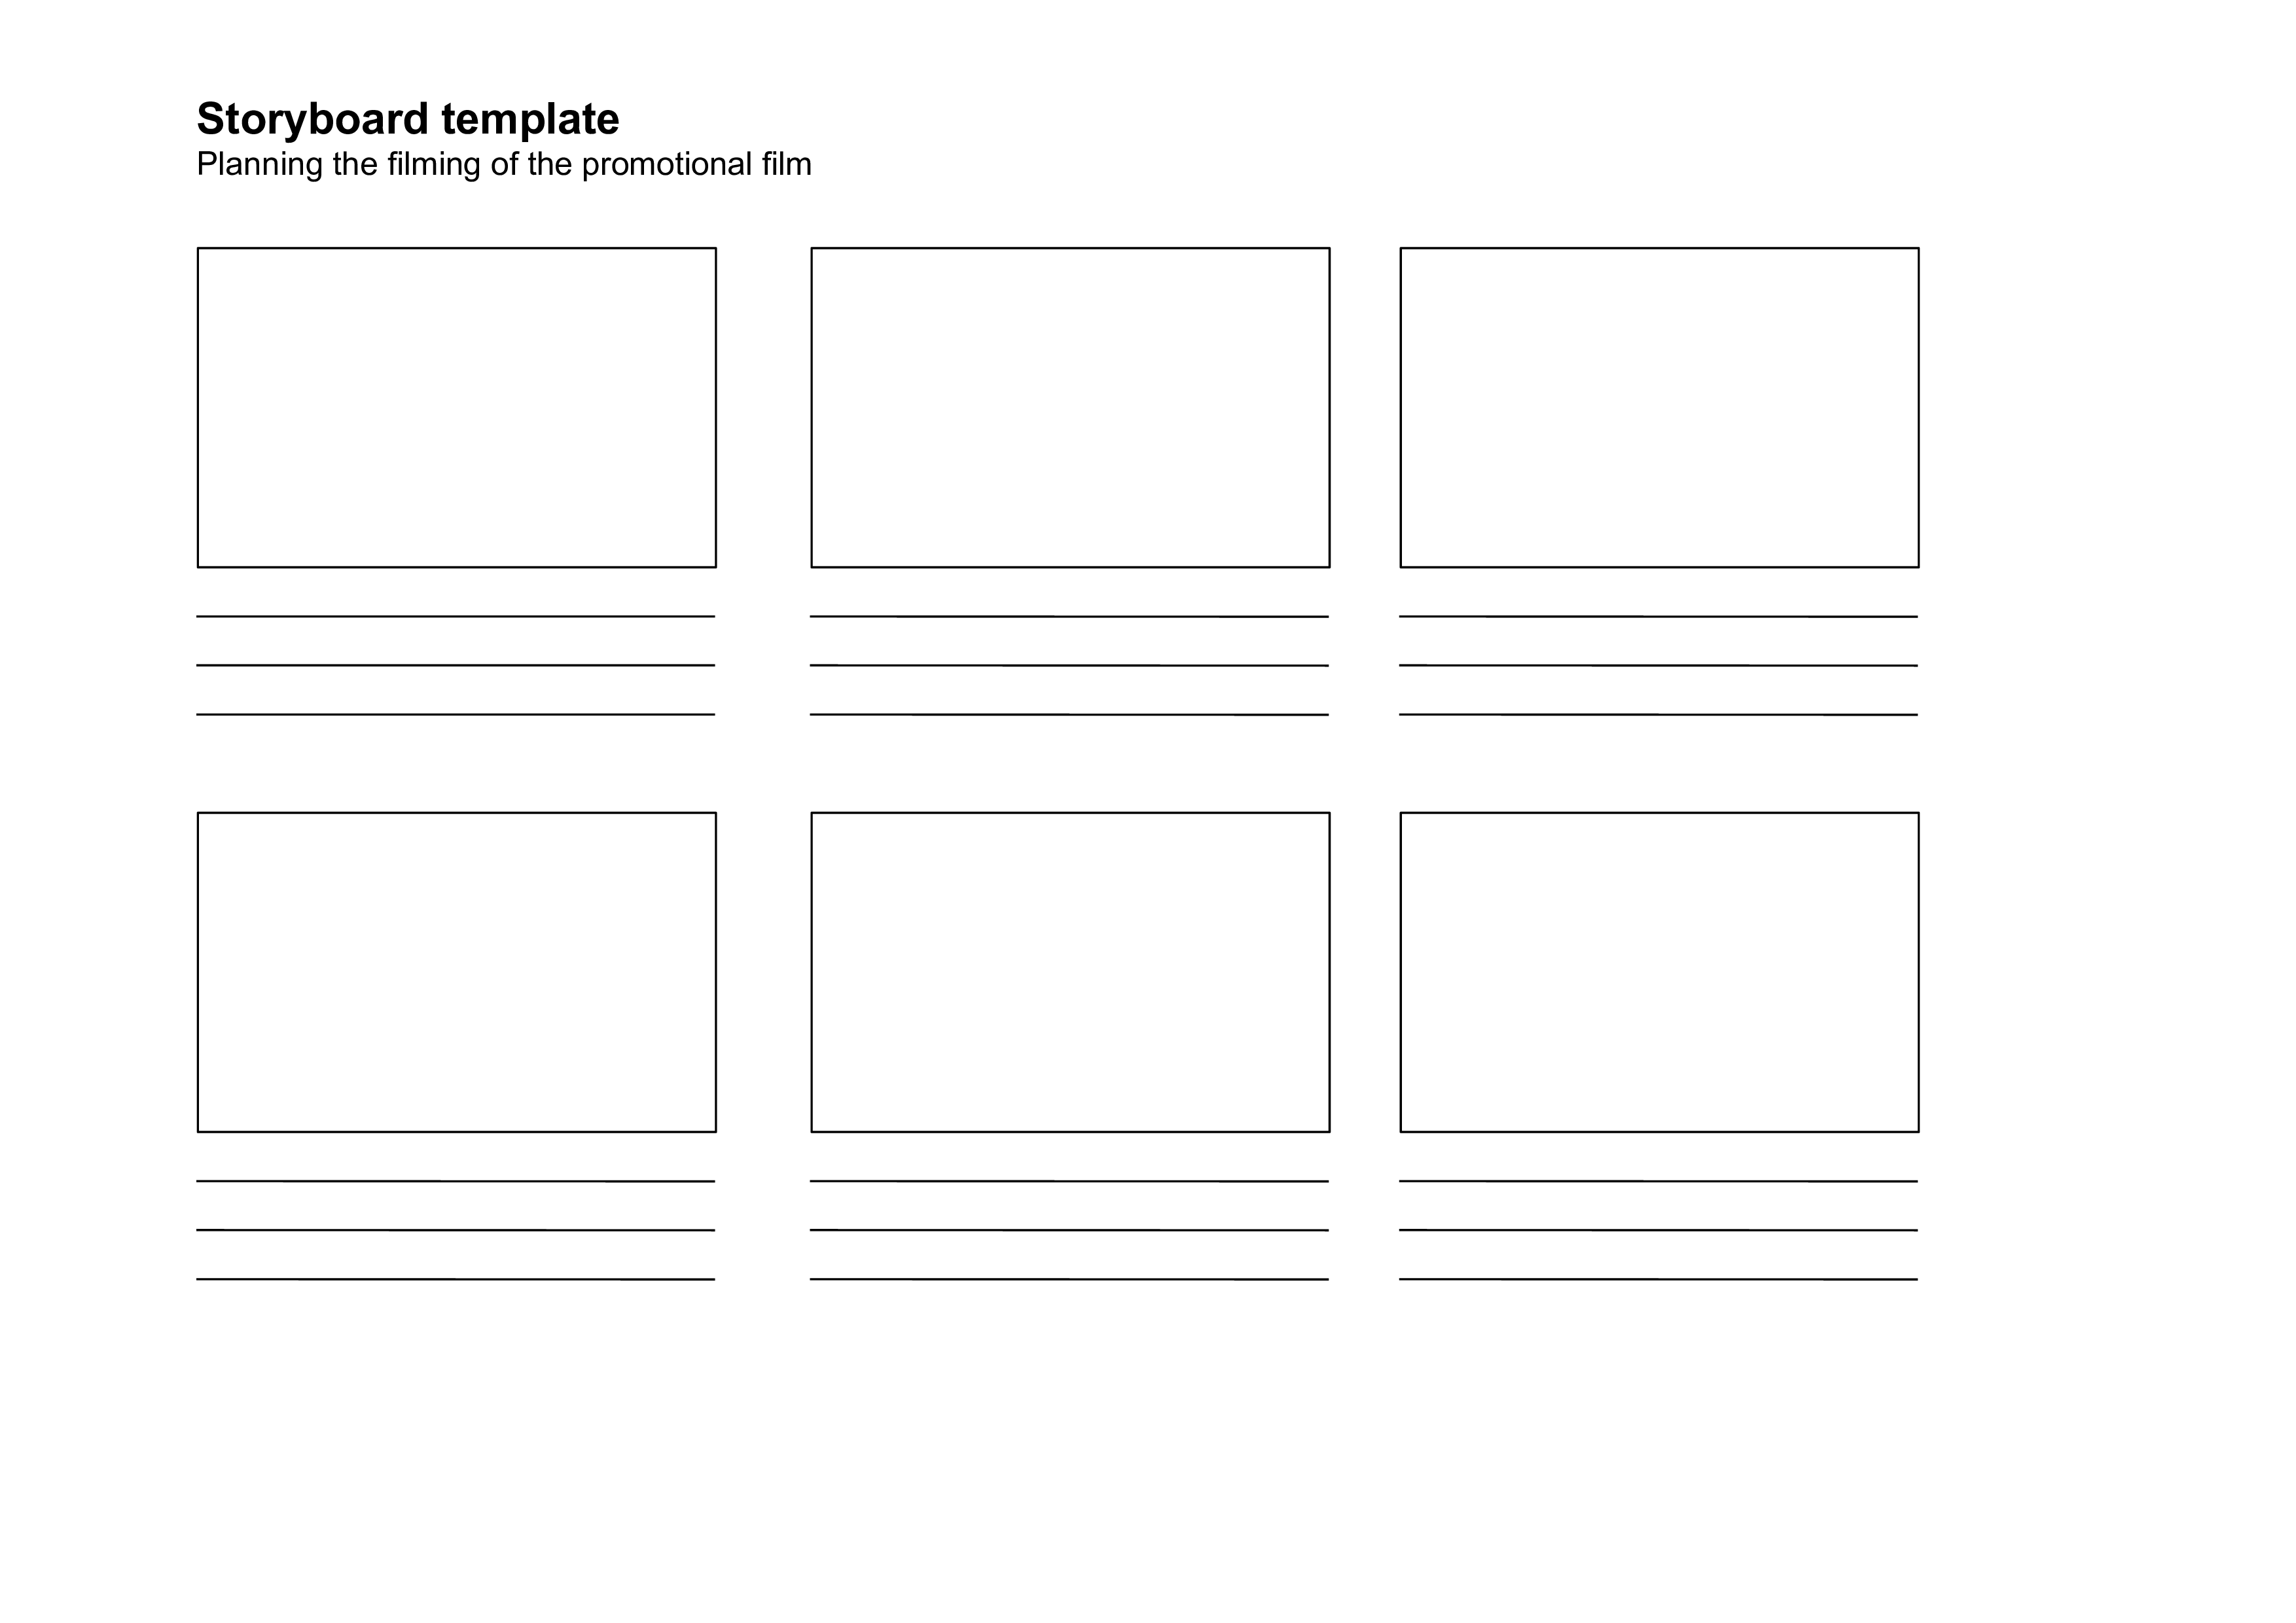 Proposal Storyboard main image